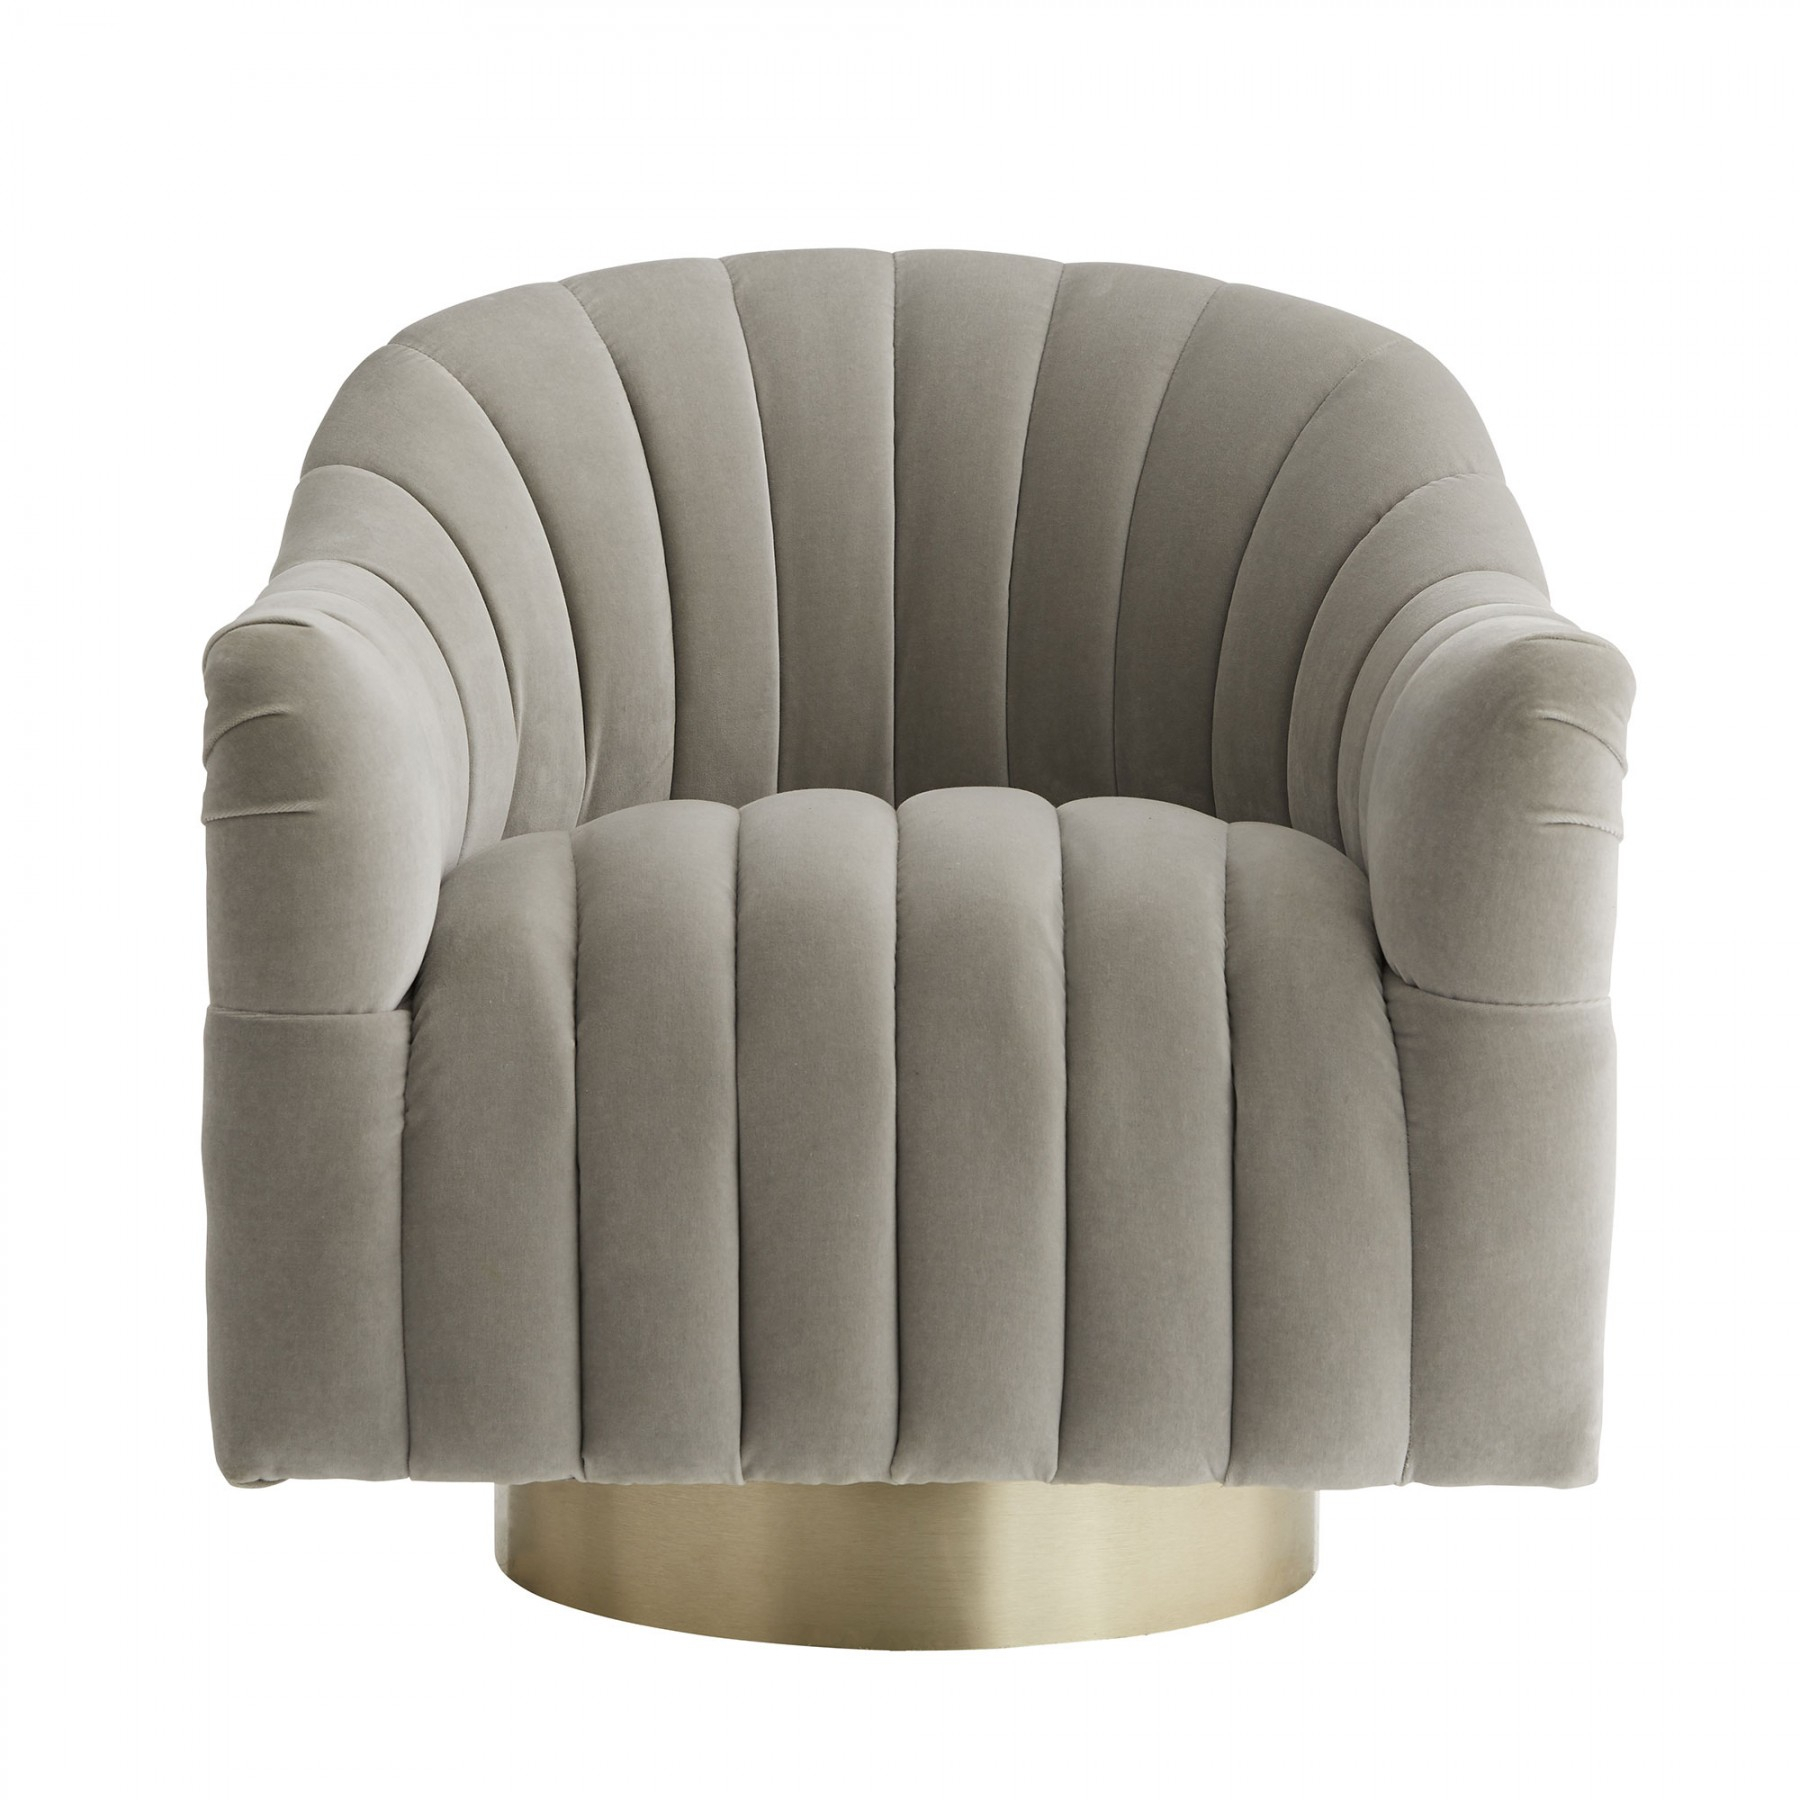 Springsteen Chair Flint Velvet Champagne Swivel In Harbor Grey Swivel Accent Chairs (Image 18 of 20)